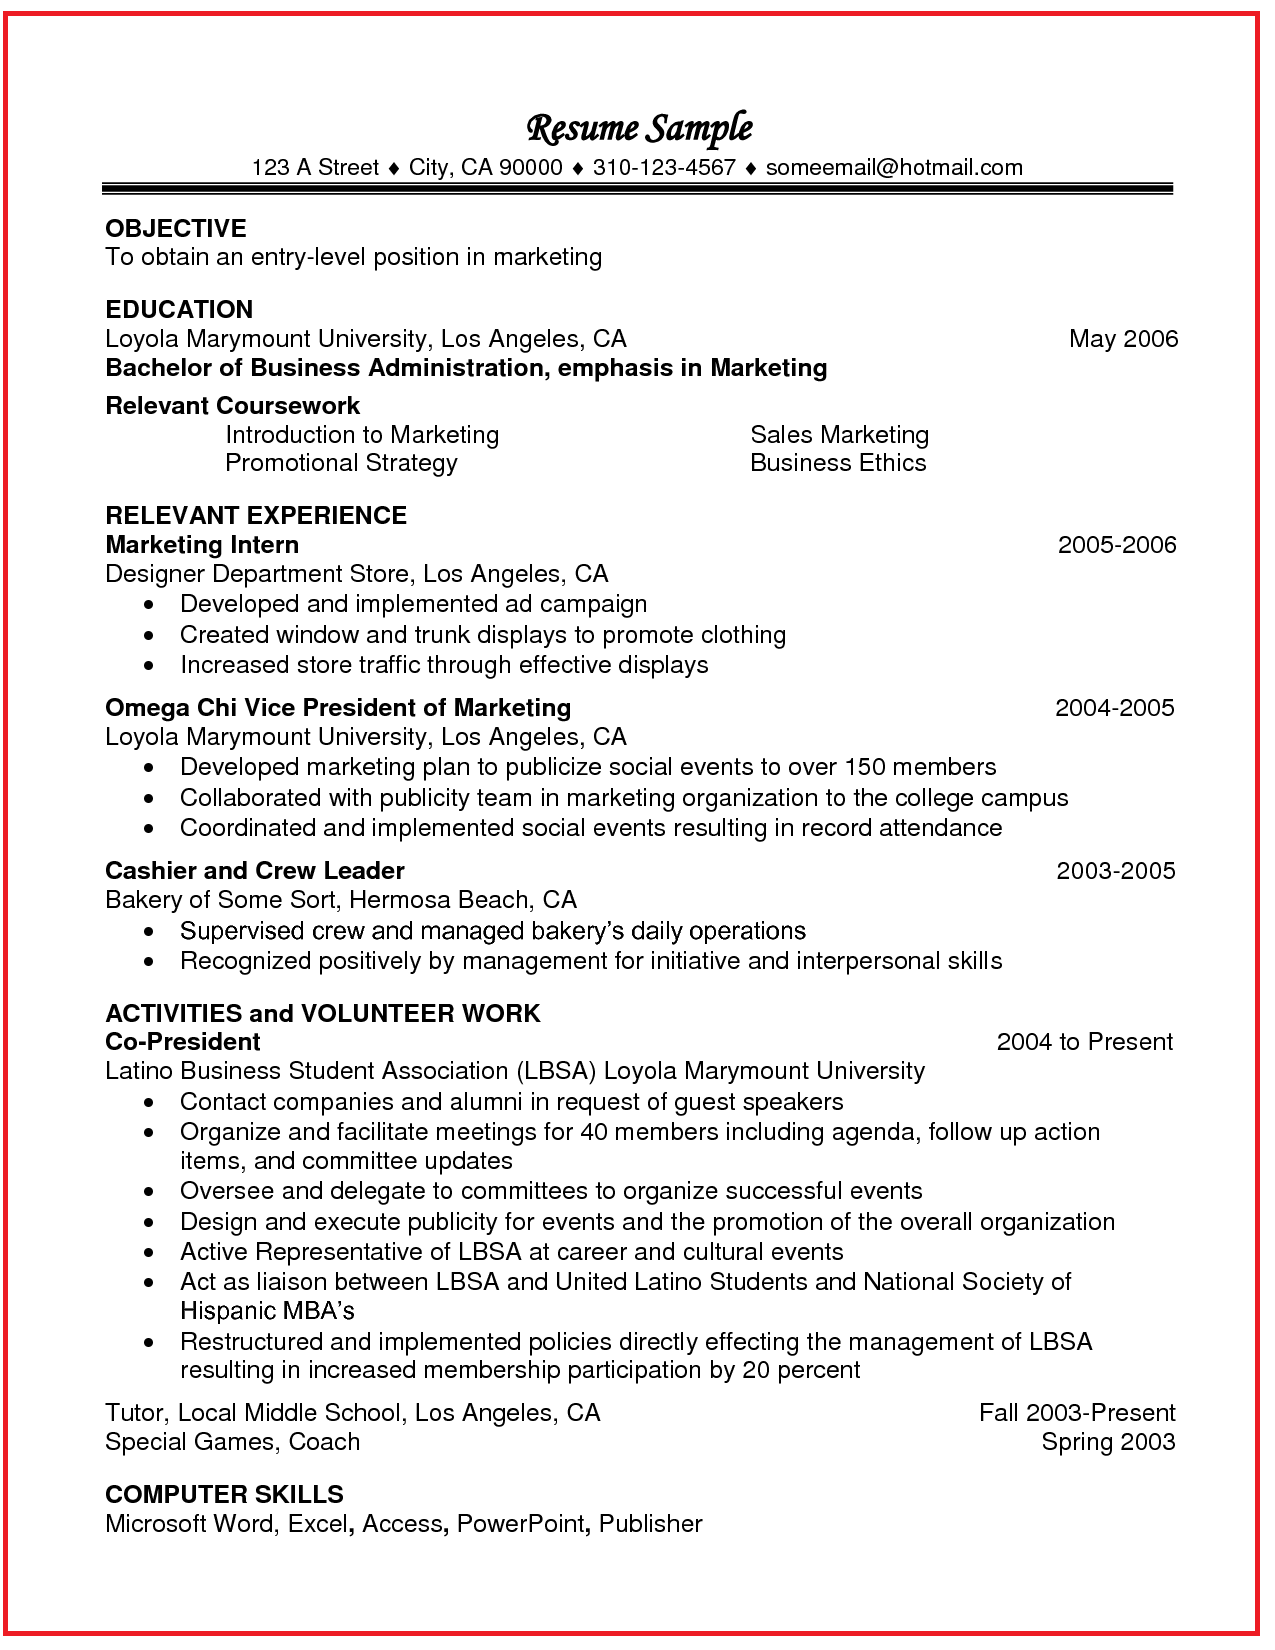 Resume Education Example Pin By Resumejob On Resume Job Pinterest Resume Job